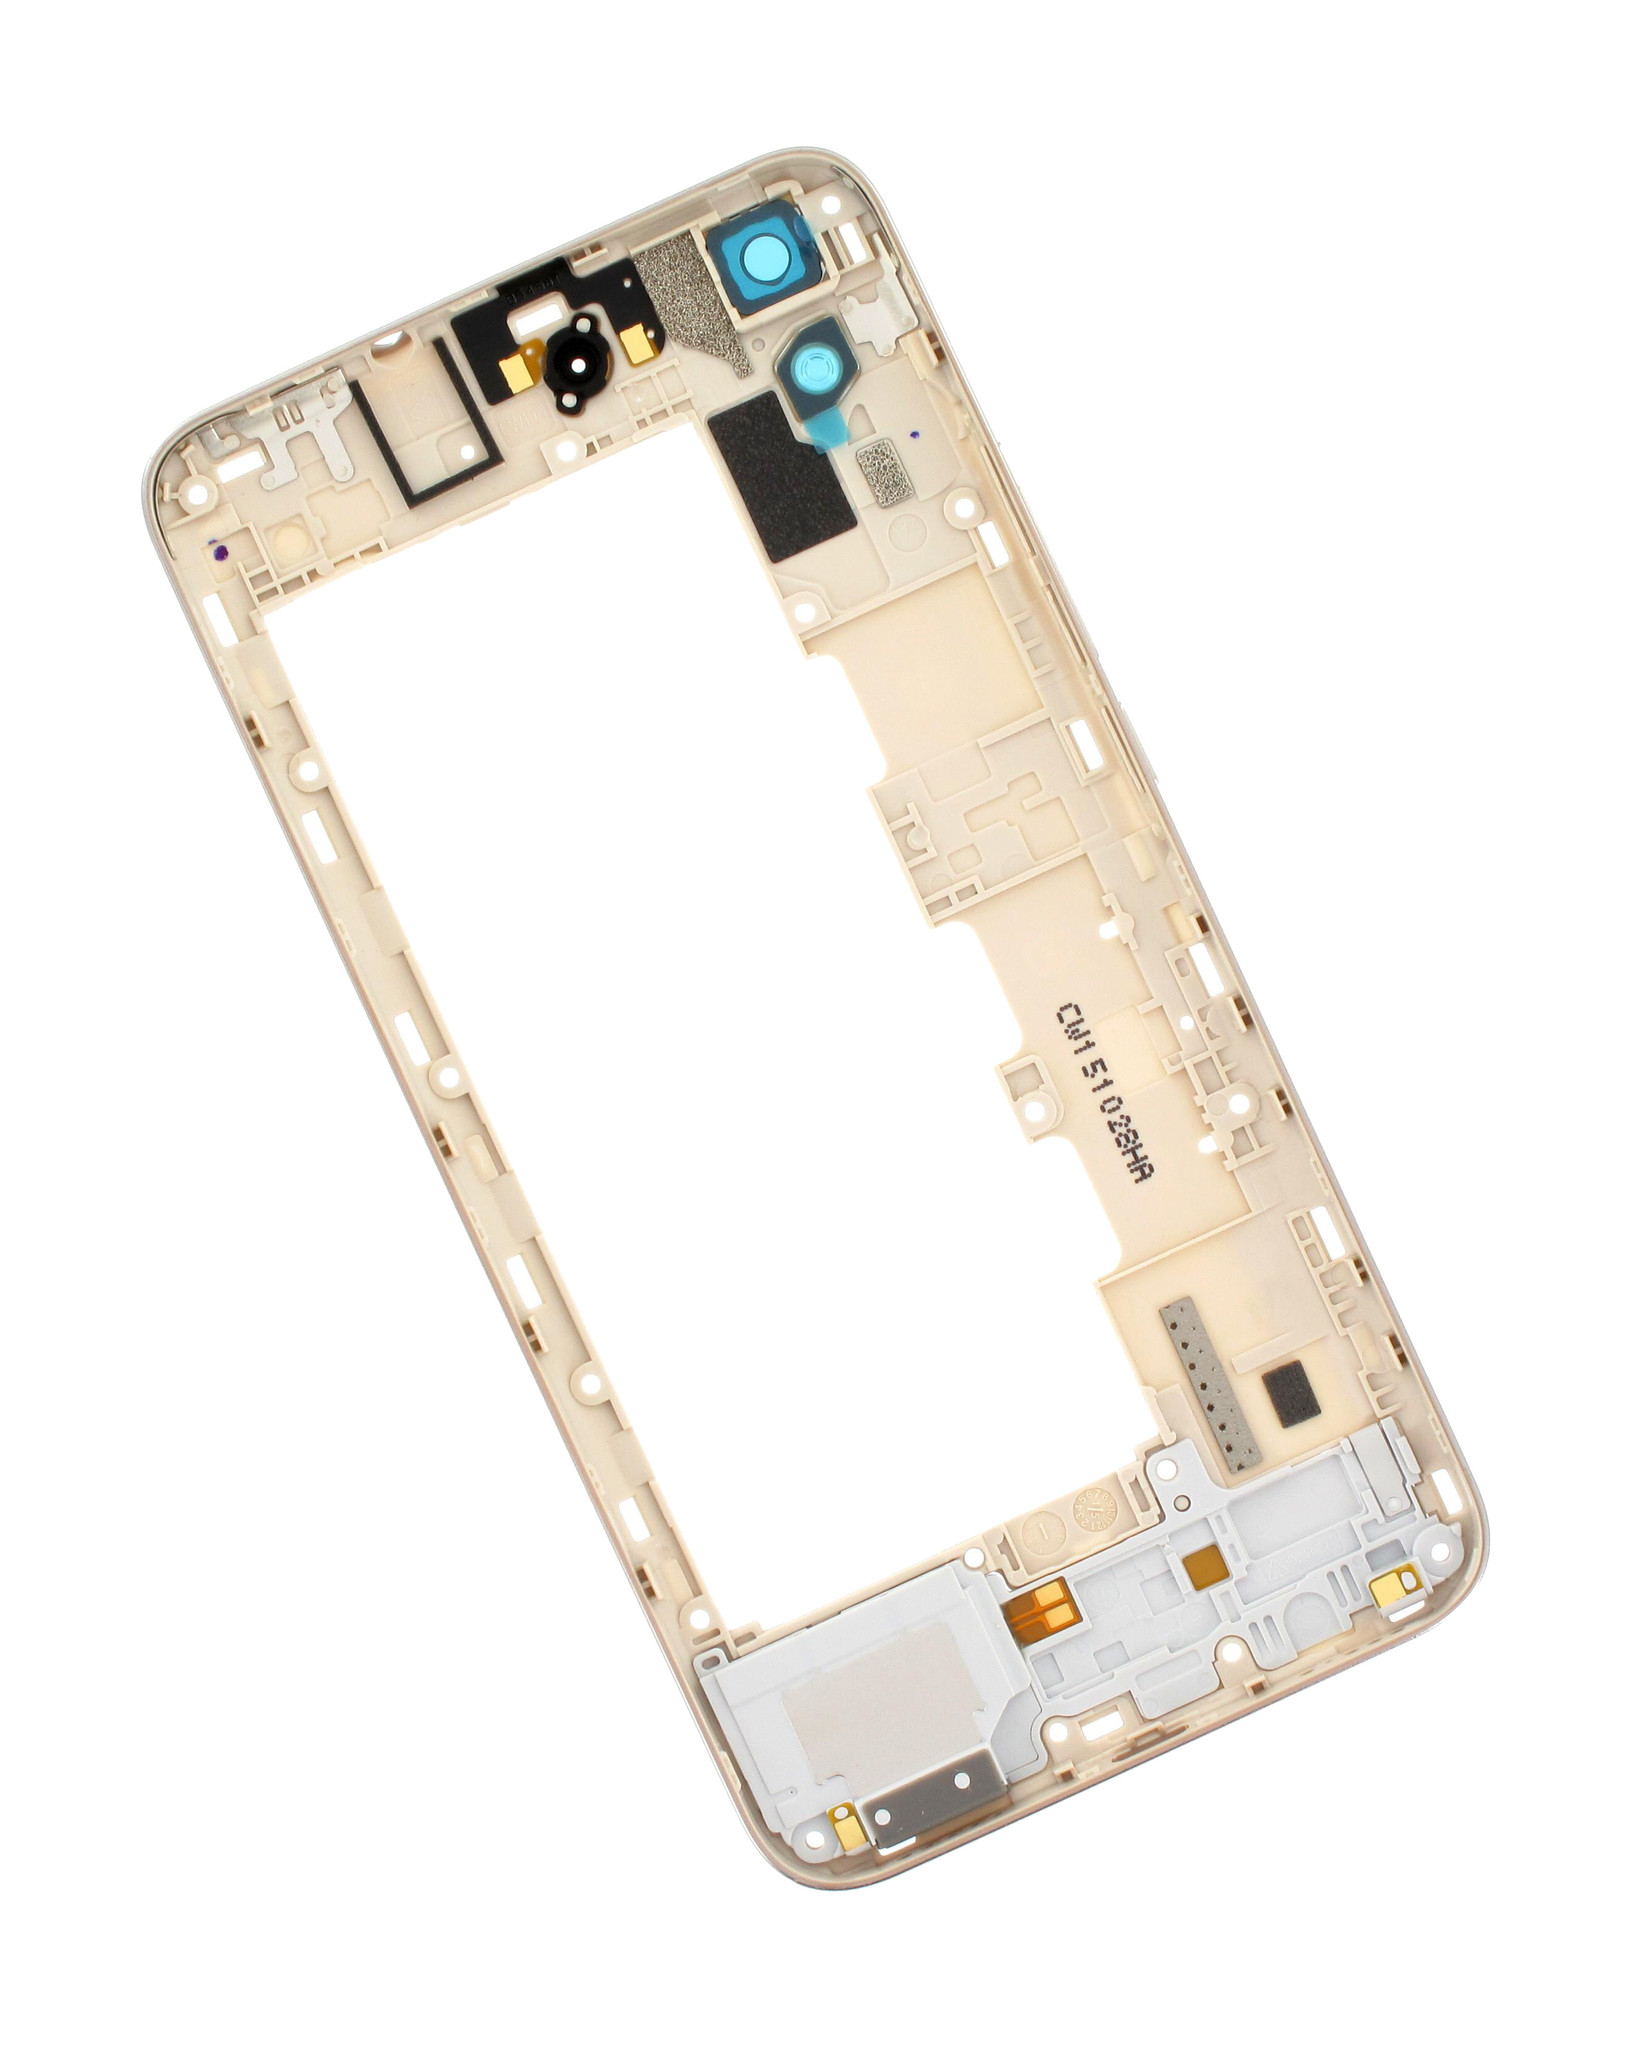 Huawei Y6 4G (SCL-L21) Middle Cover, White, 02350LUX - Parts4GSM